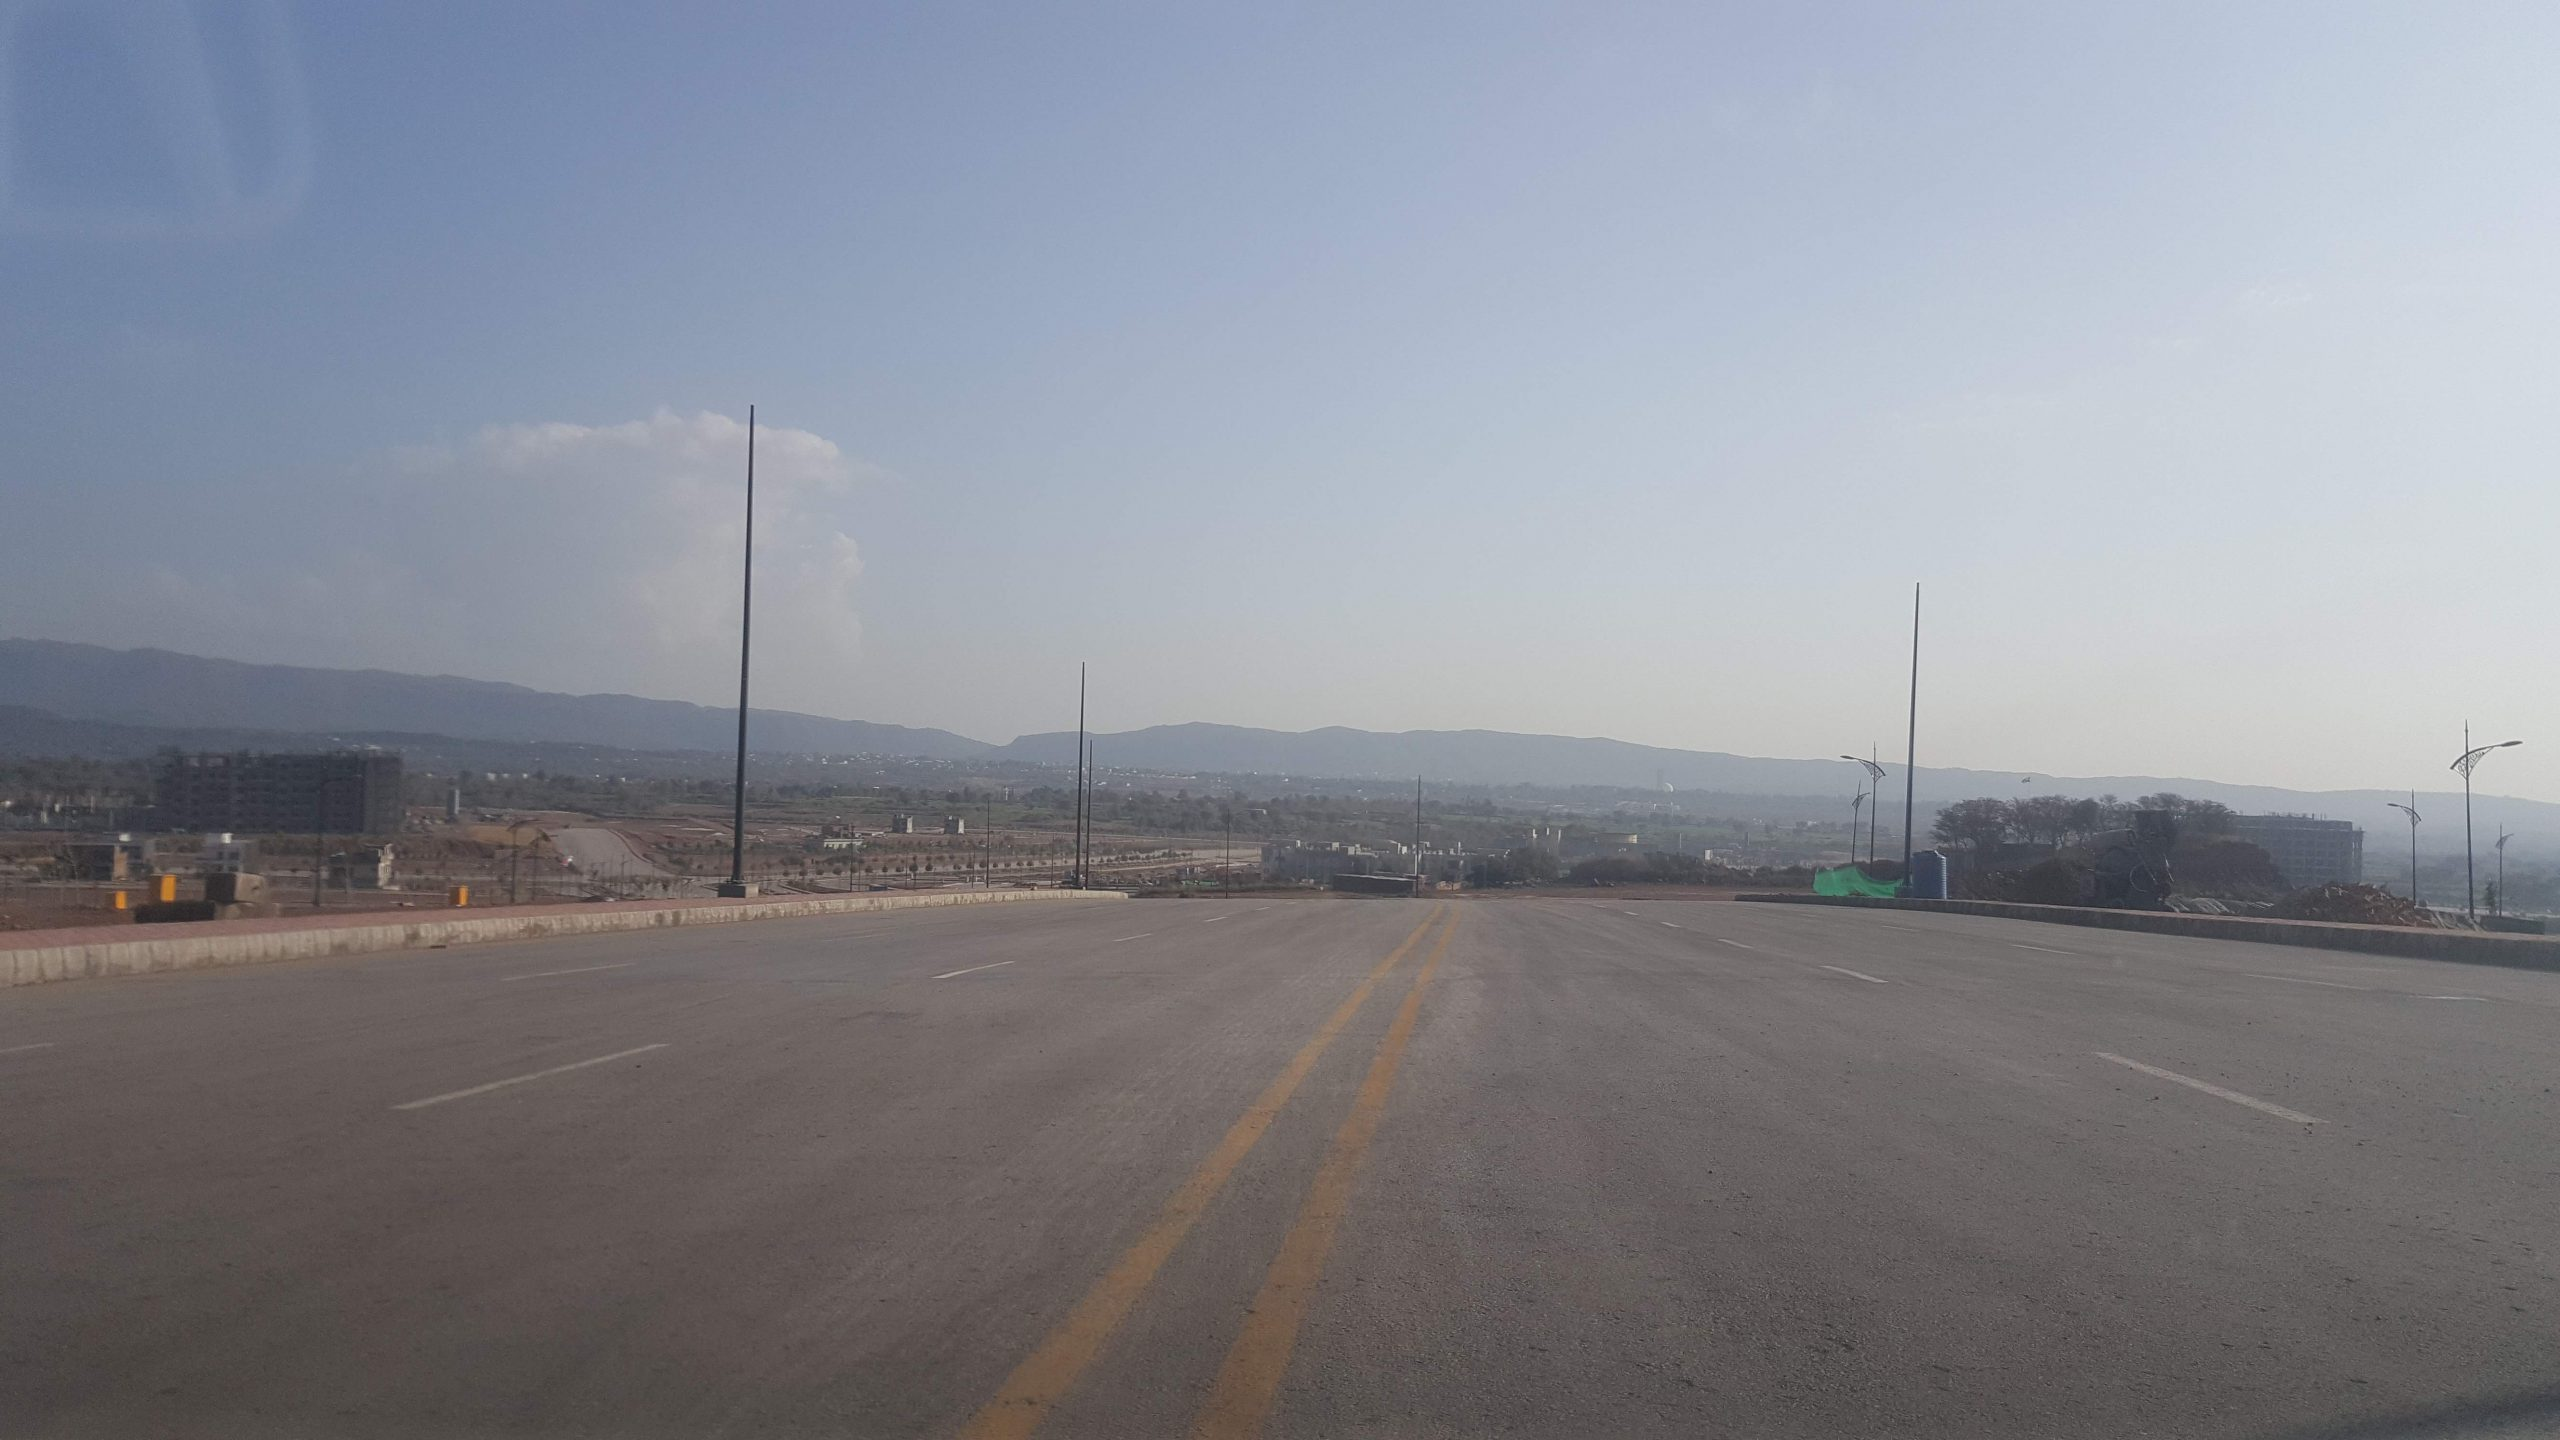 Bahria Town Sector N 10 Marla Ready Plot For Sale In Bahria Enclave Islamabad Reasonable Price Heighted Location